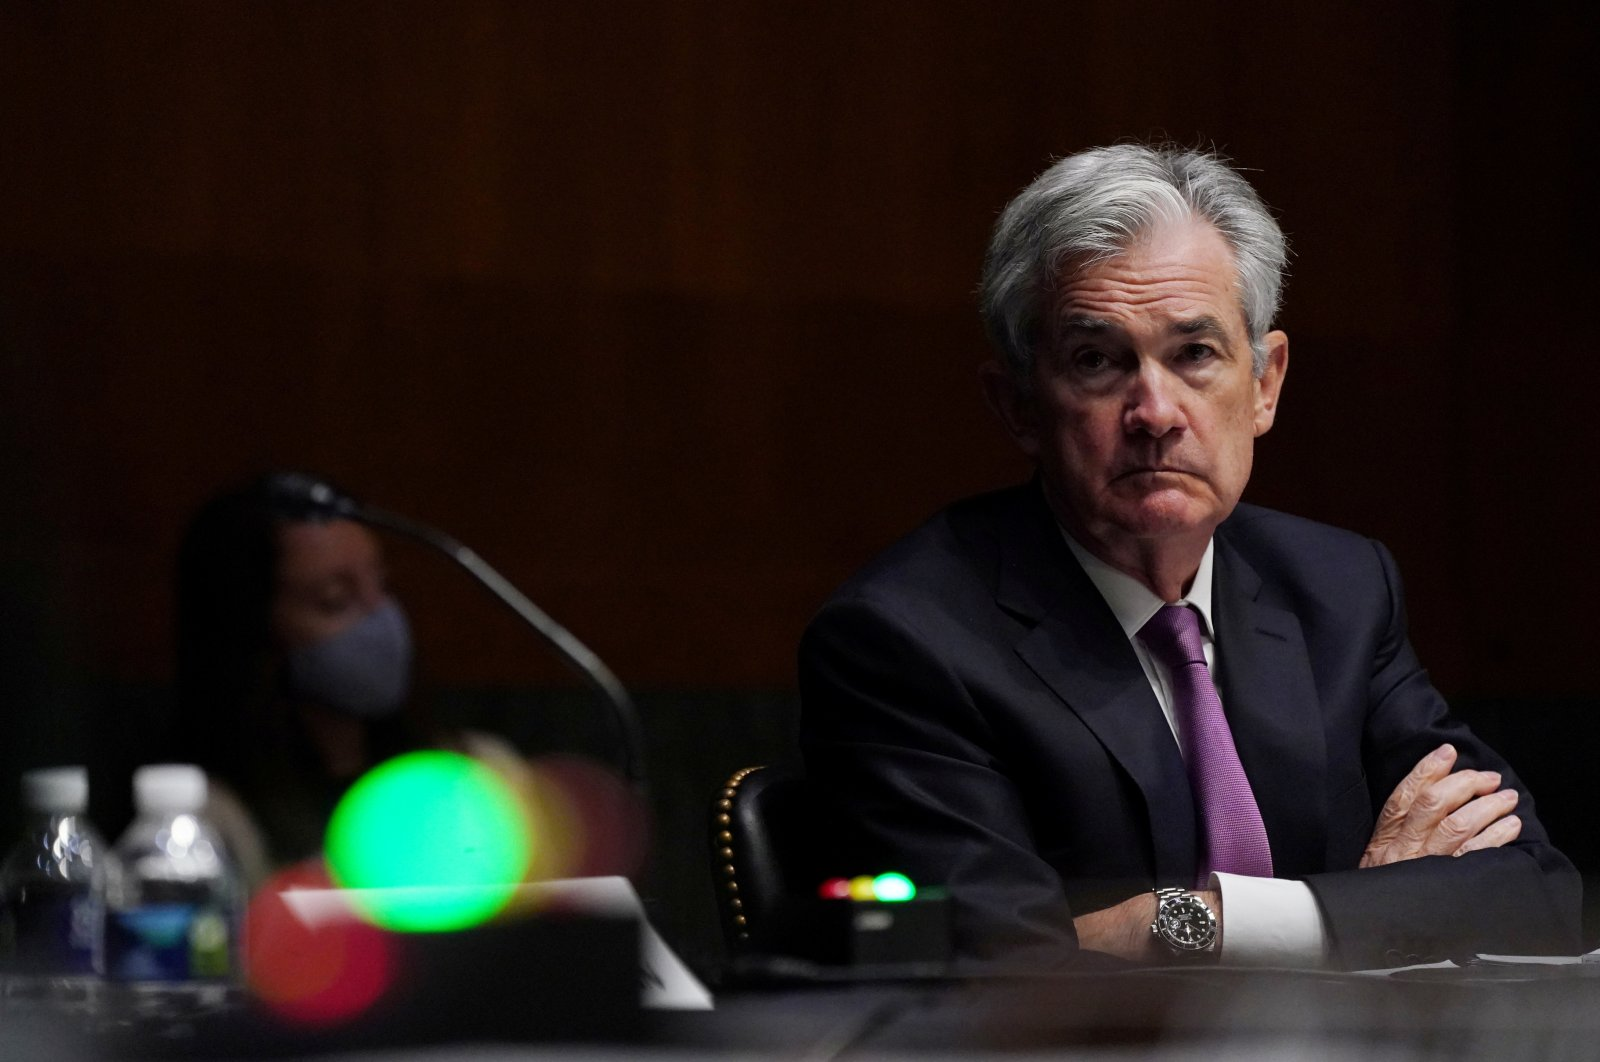 U.S. Federal Reserve Chairman Jerome Powell listens during the Senate Committee on Banking, Housing and Urban Affairs hearing examining the quarterly CARES Act report to Congress, in Washington, D.C., U.S., Sept. 24, 2020. (Reuters Photo)